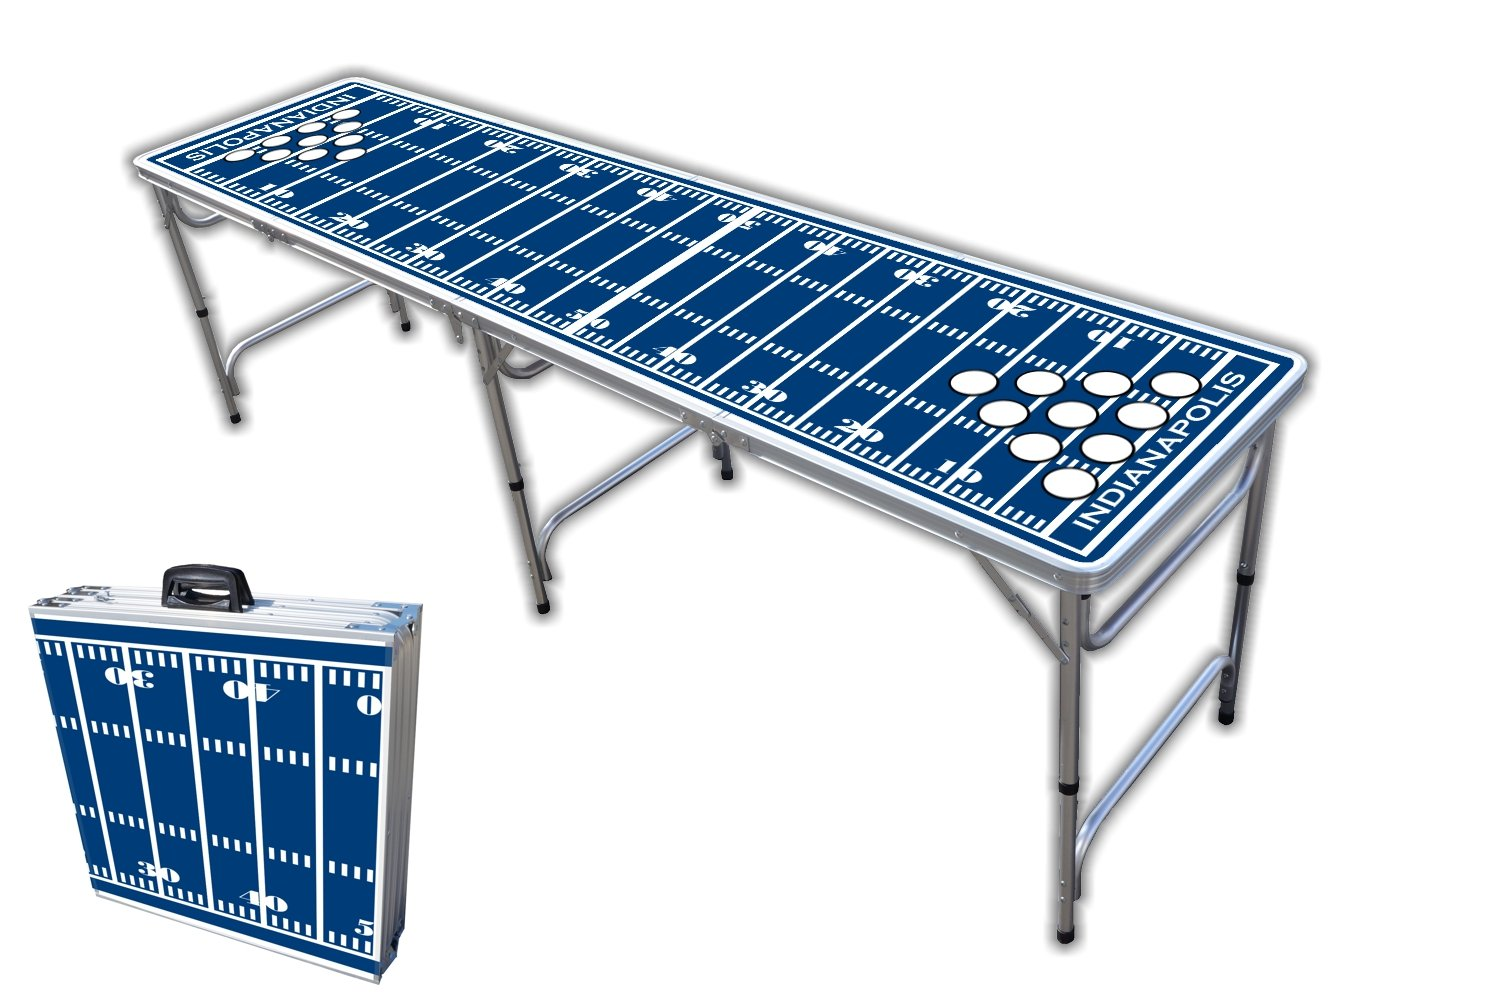 8-Foot Professional Beer Pong Table w/Holes - Indianapolis Football Field Graphic by PartyPongTables.com